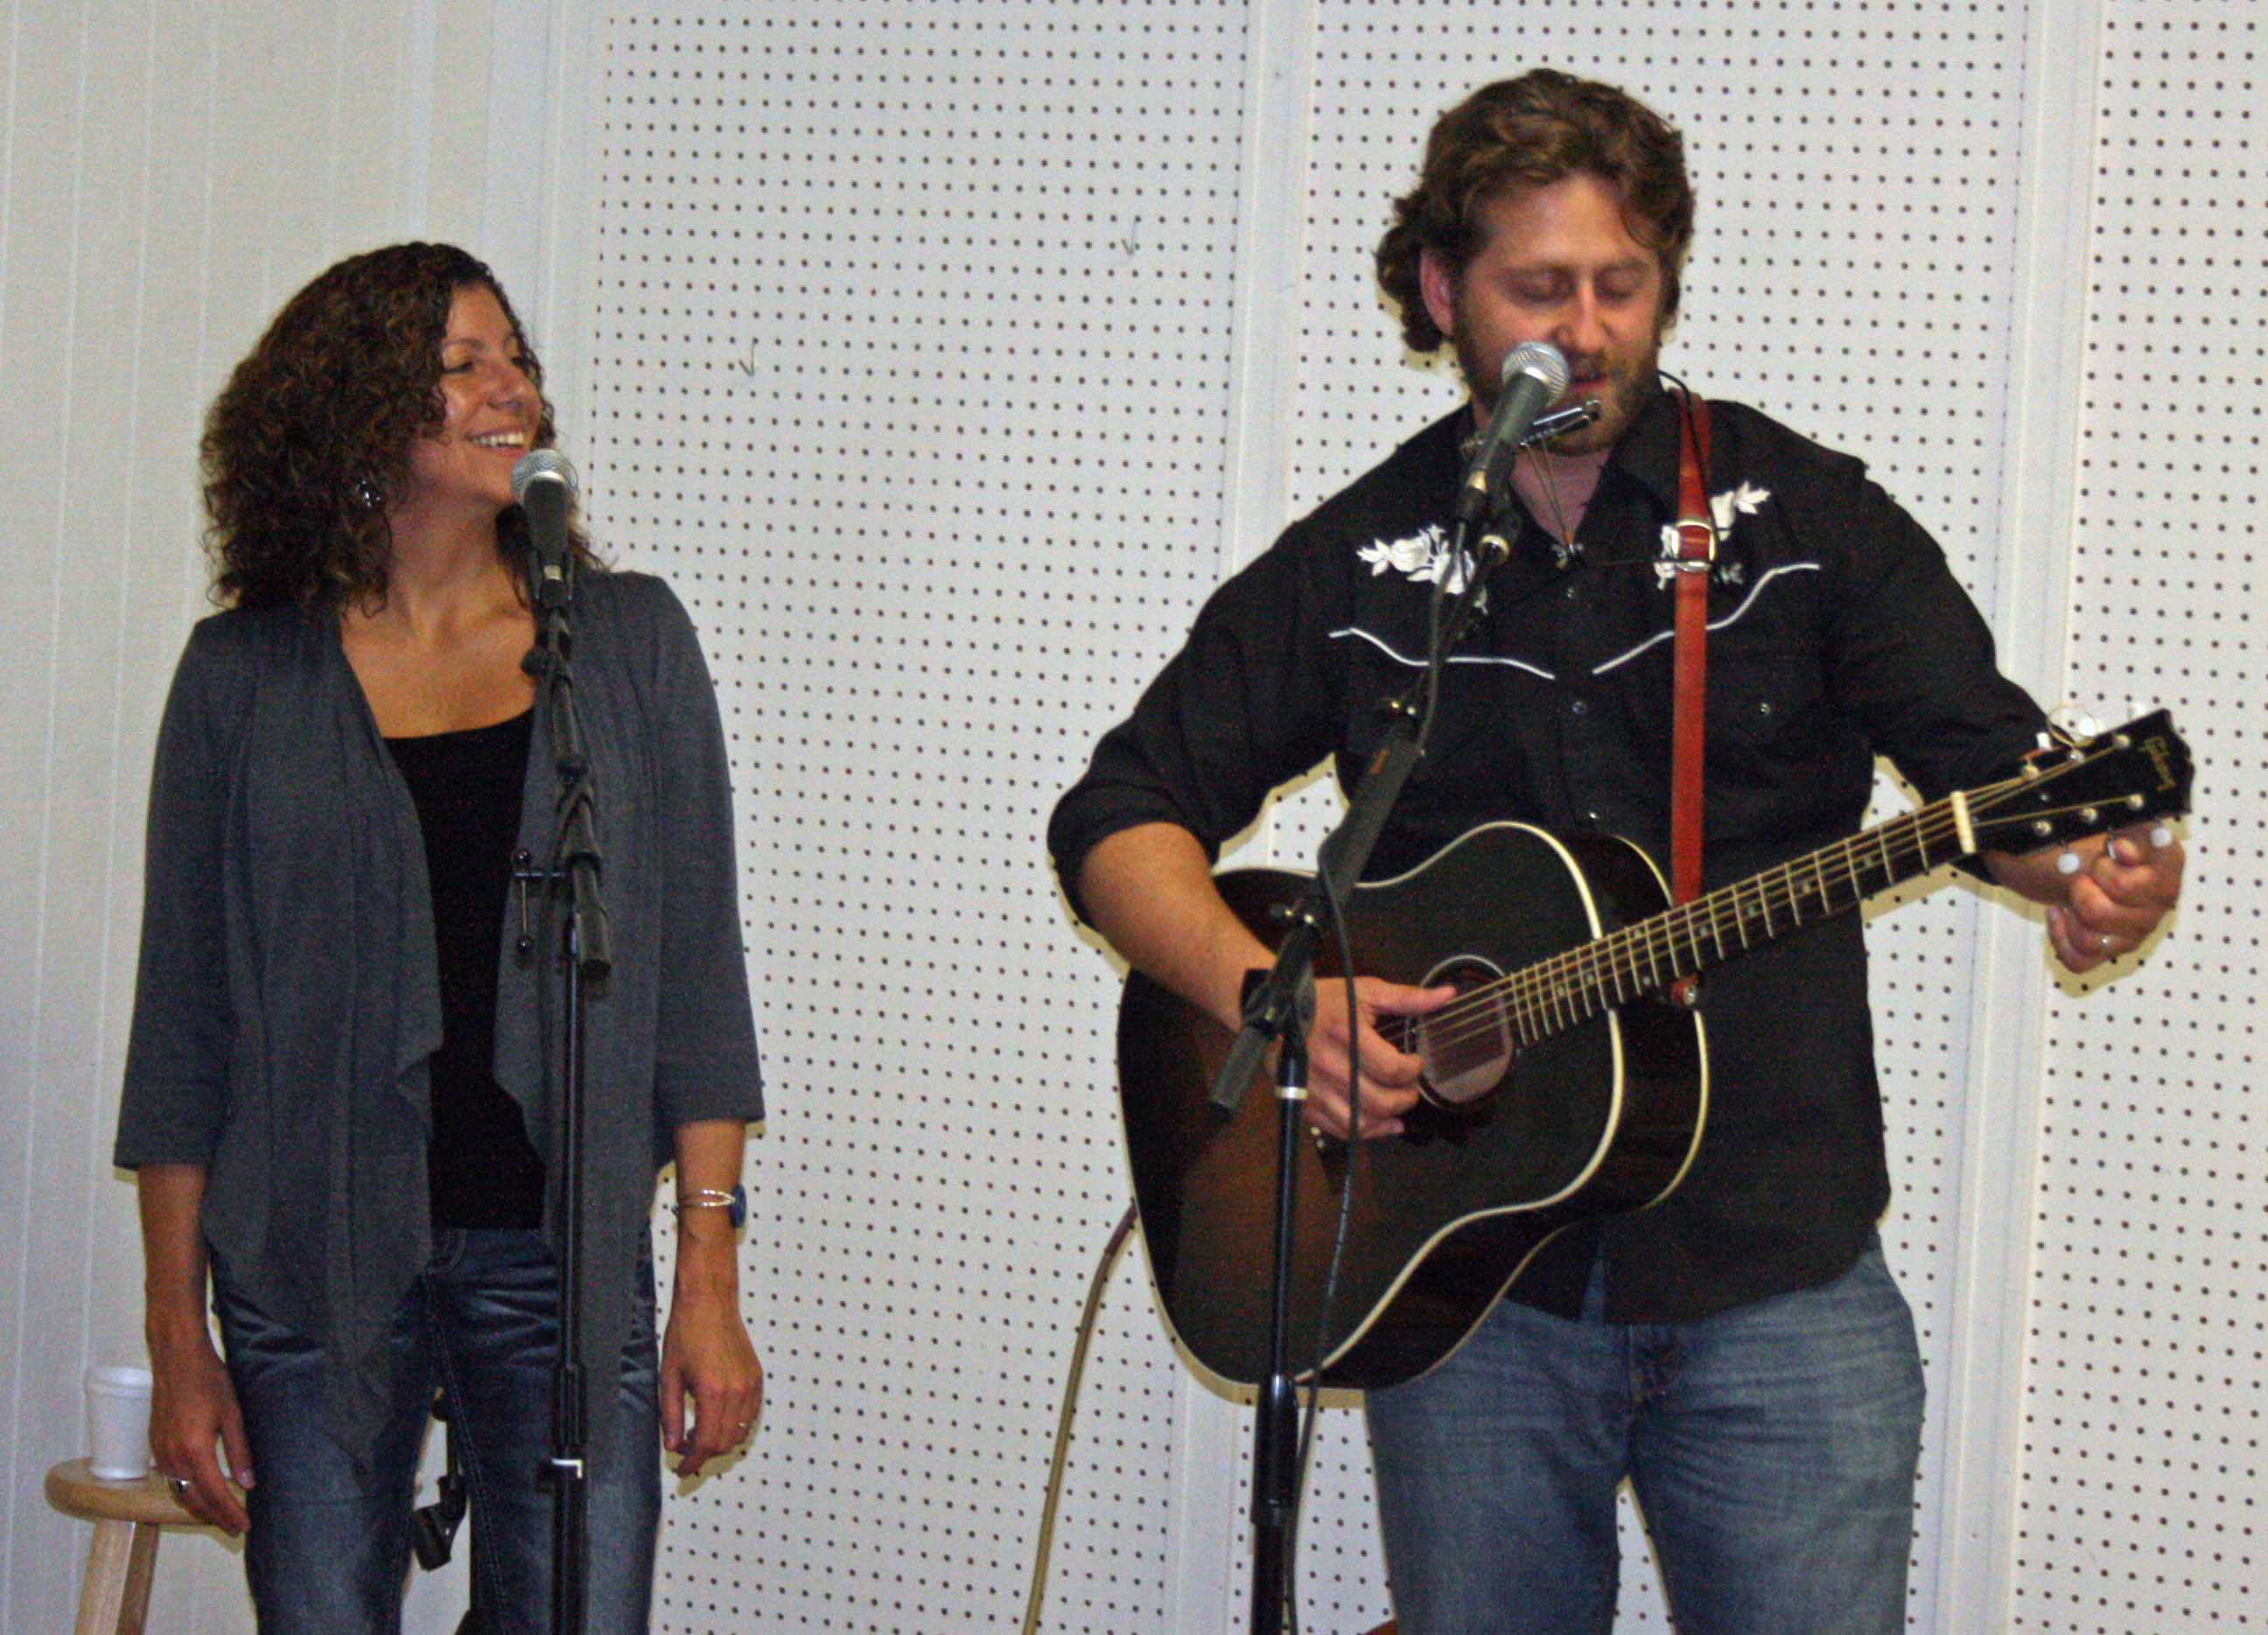 October 1, 2012 - Chad Elliot w/Bonita Crowe